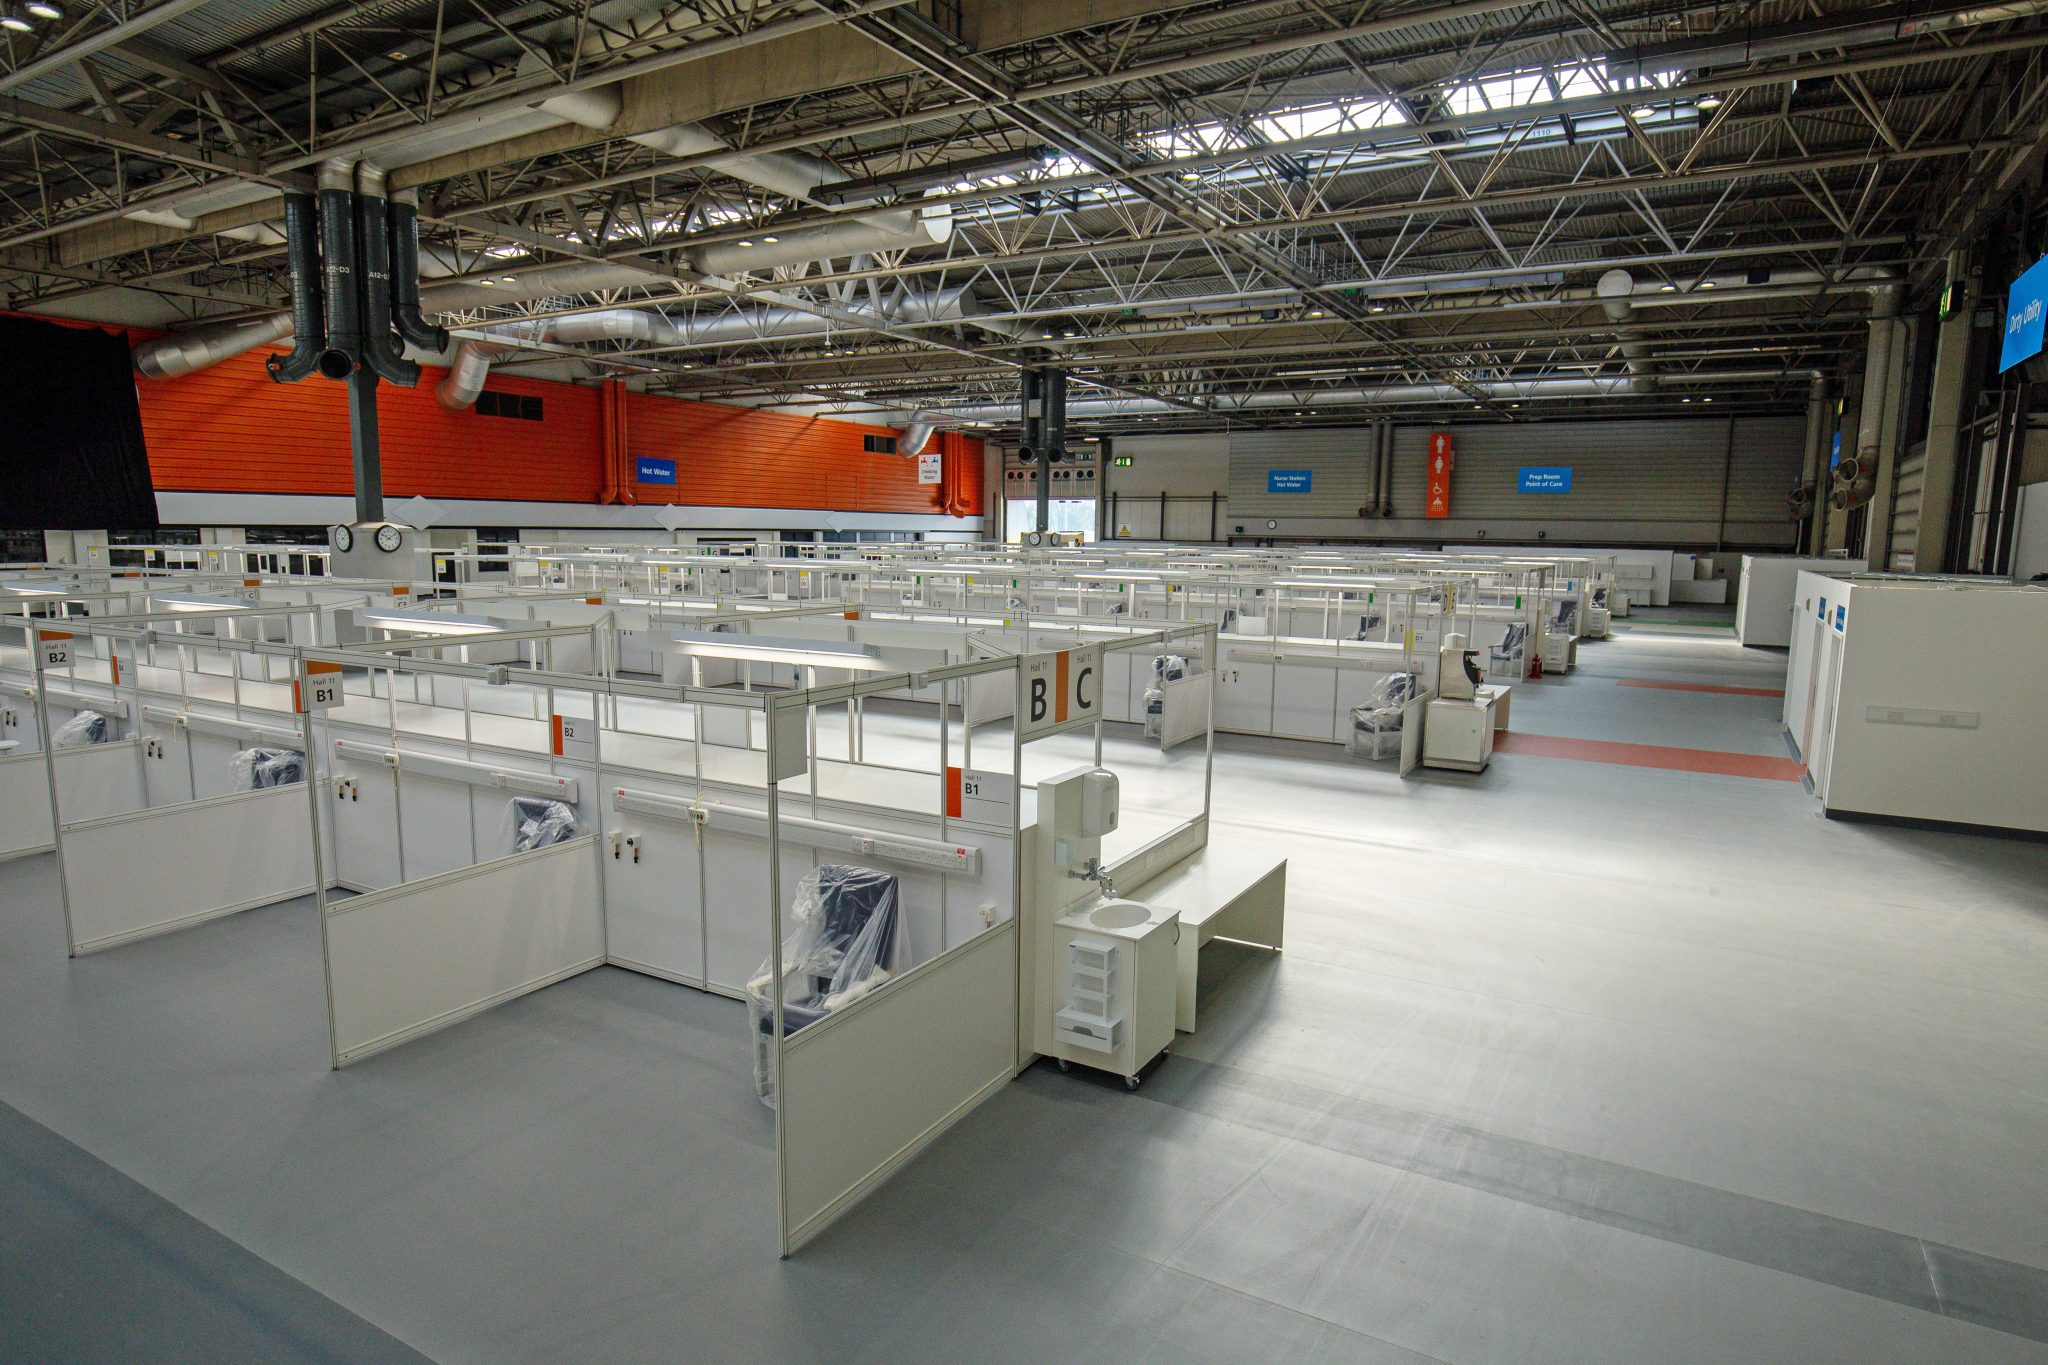 Inside the NHS Nightingale hospital inside London's Excel centre, sits empty